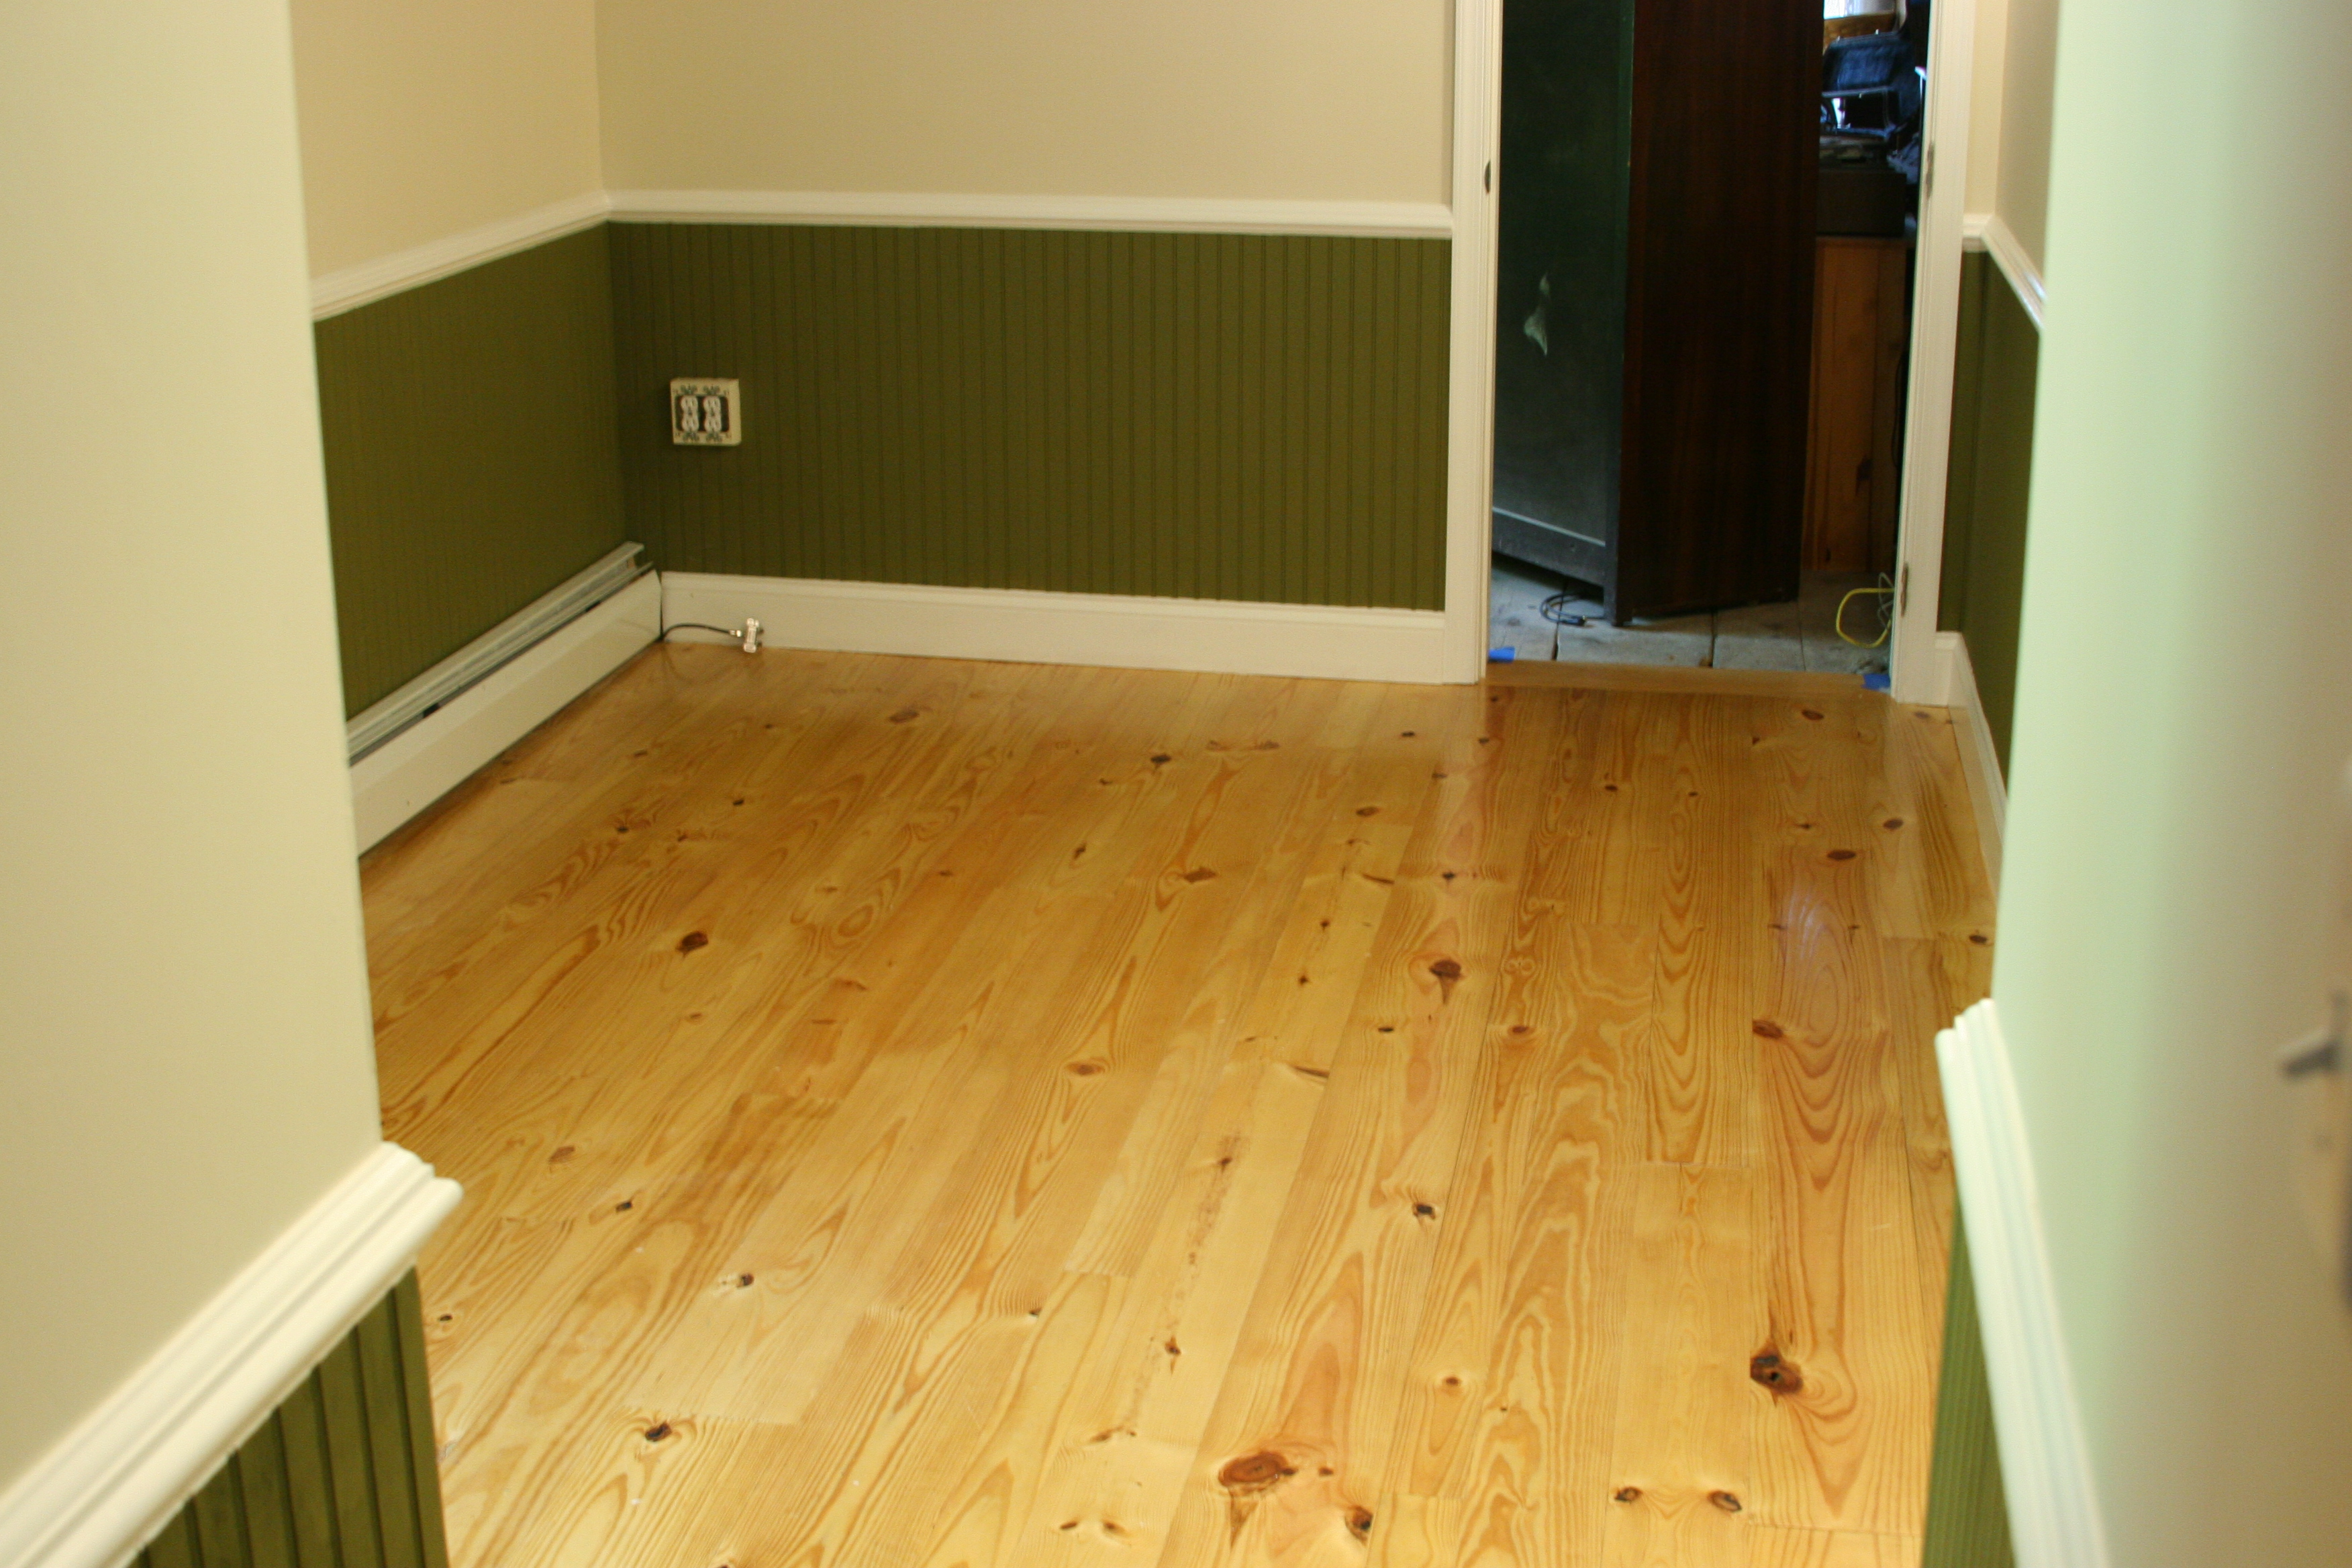 Unlike The Hardwoods Above Yellow Pine Floors Come In 6 And Longer Lengths Flooring Is A Great Value Heart Sometimes Available